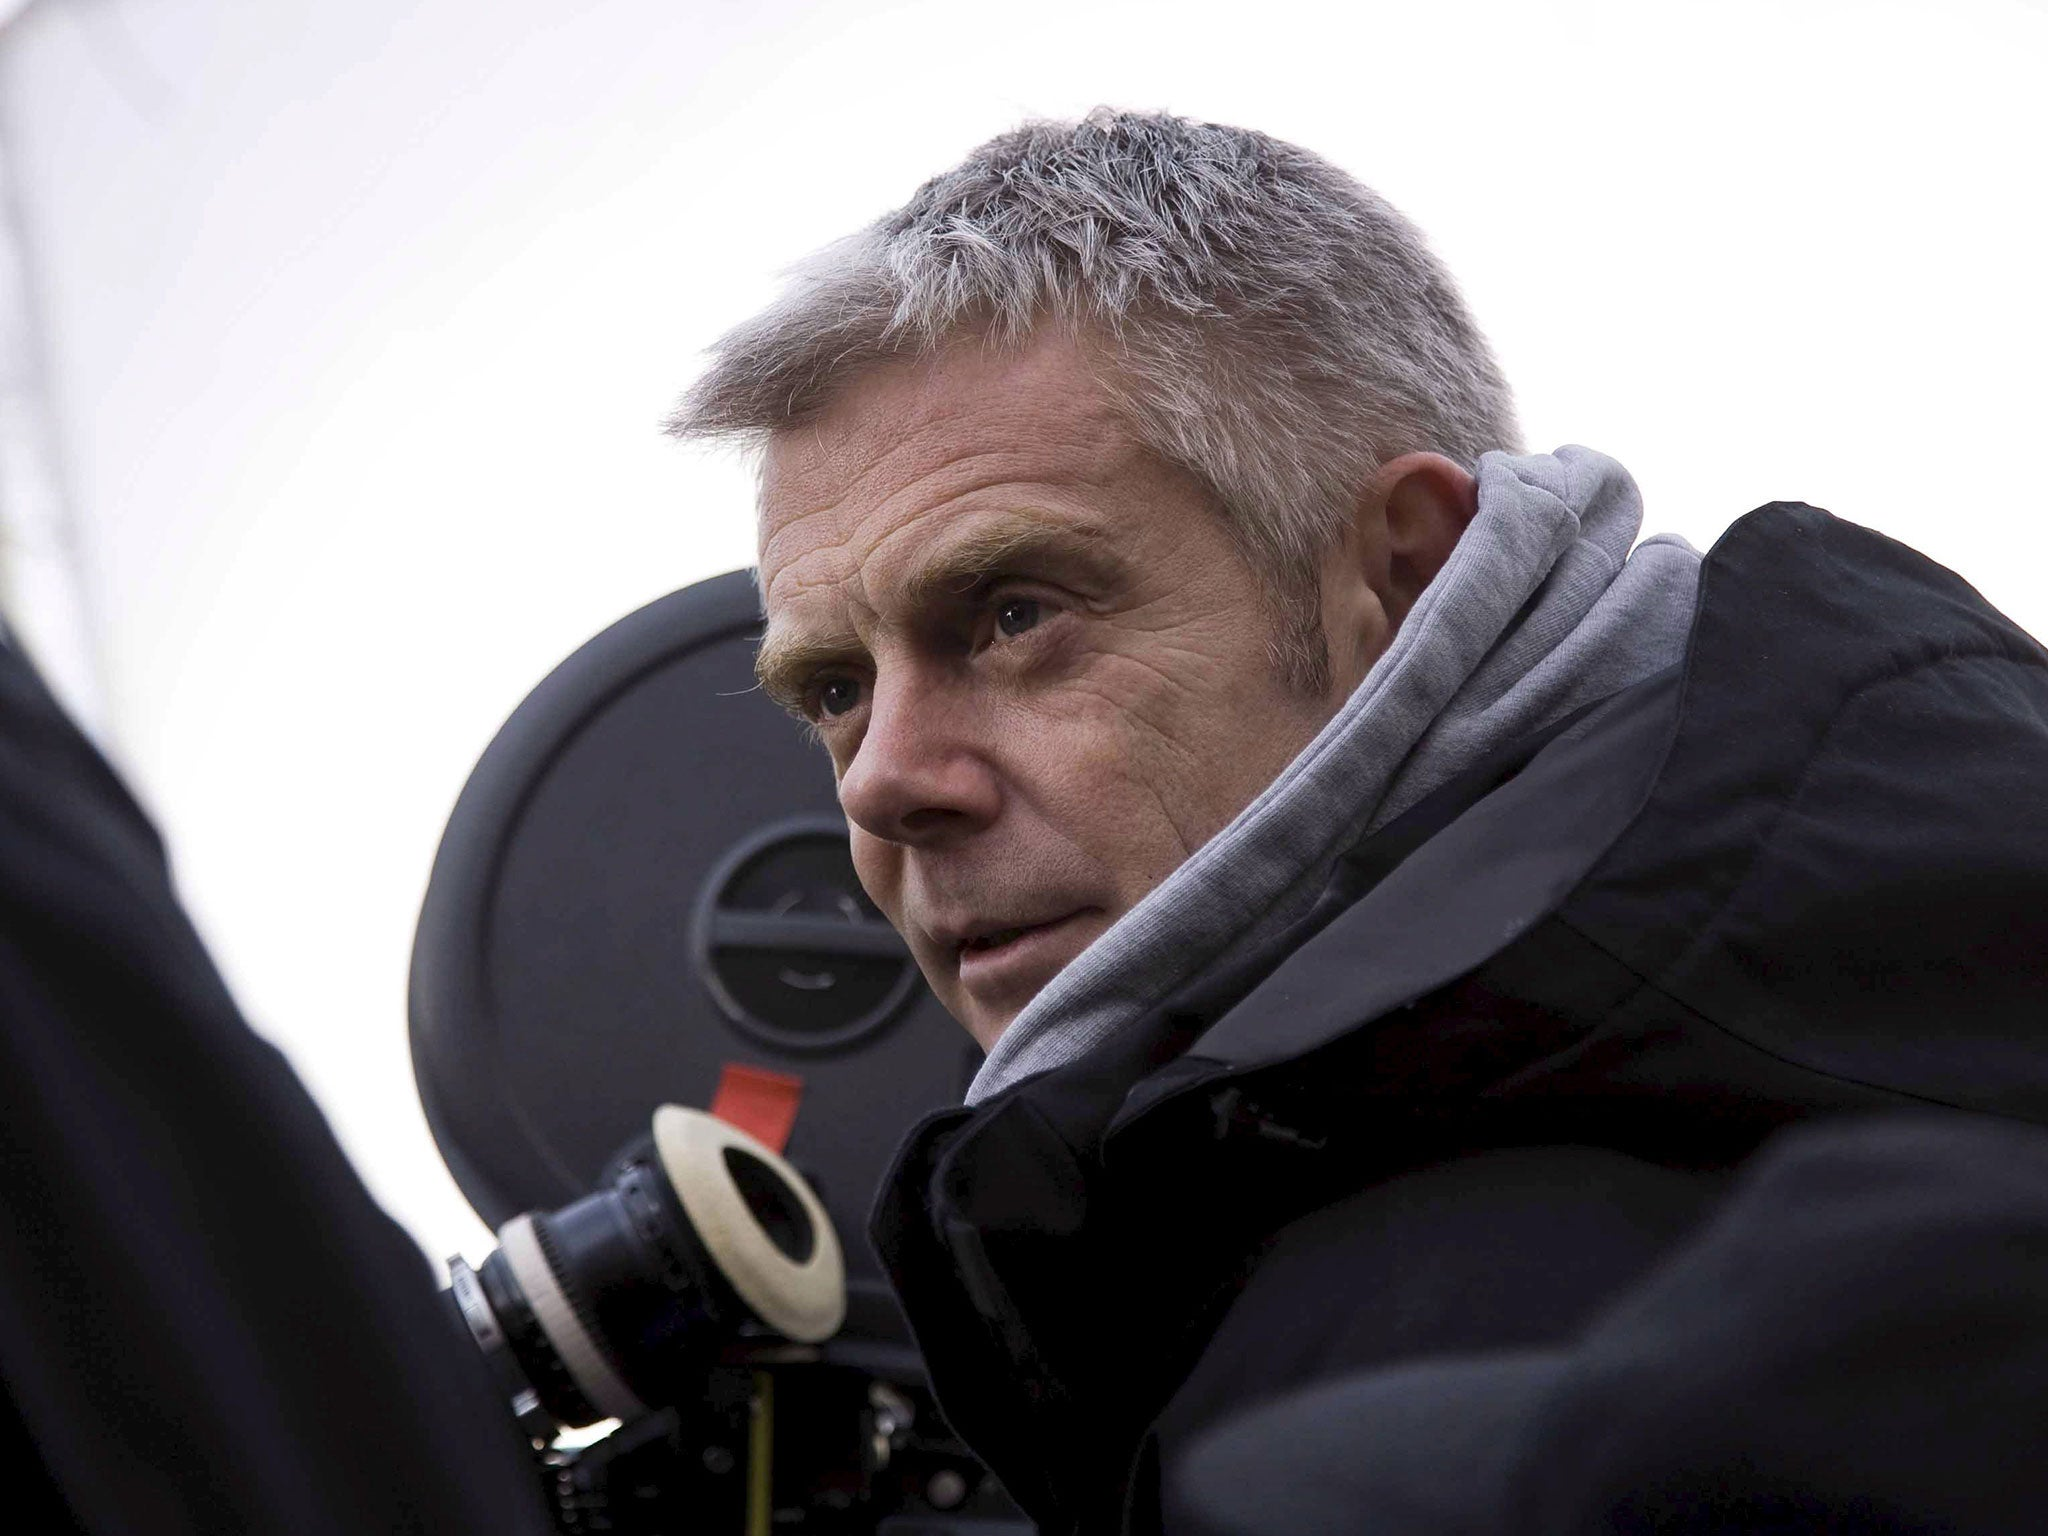 stephen daldry films list